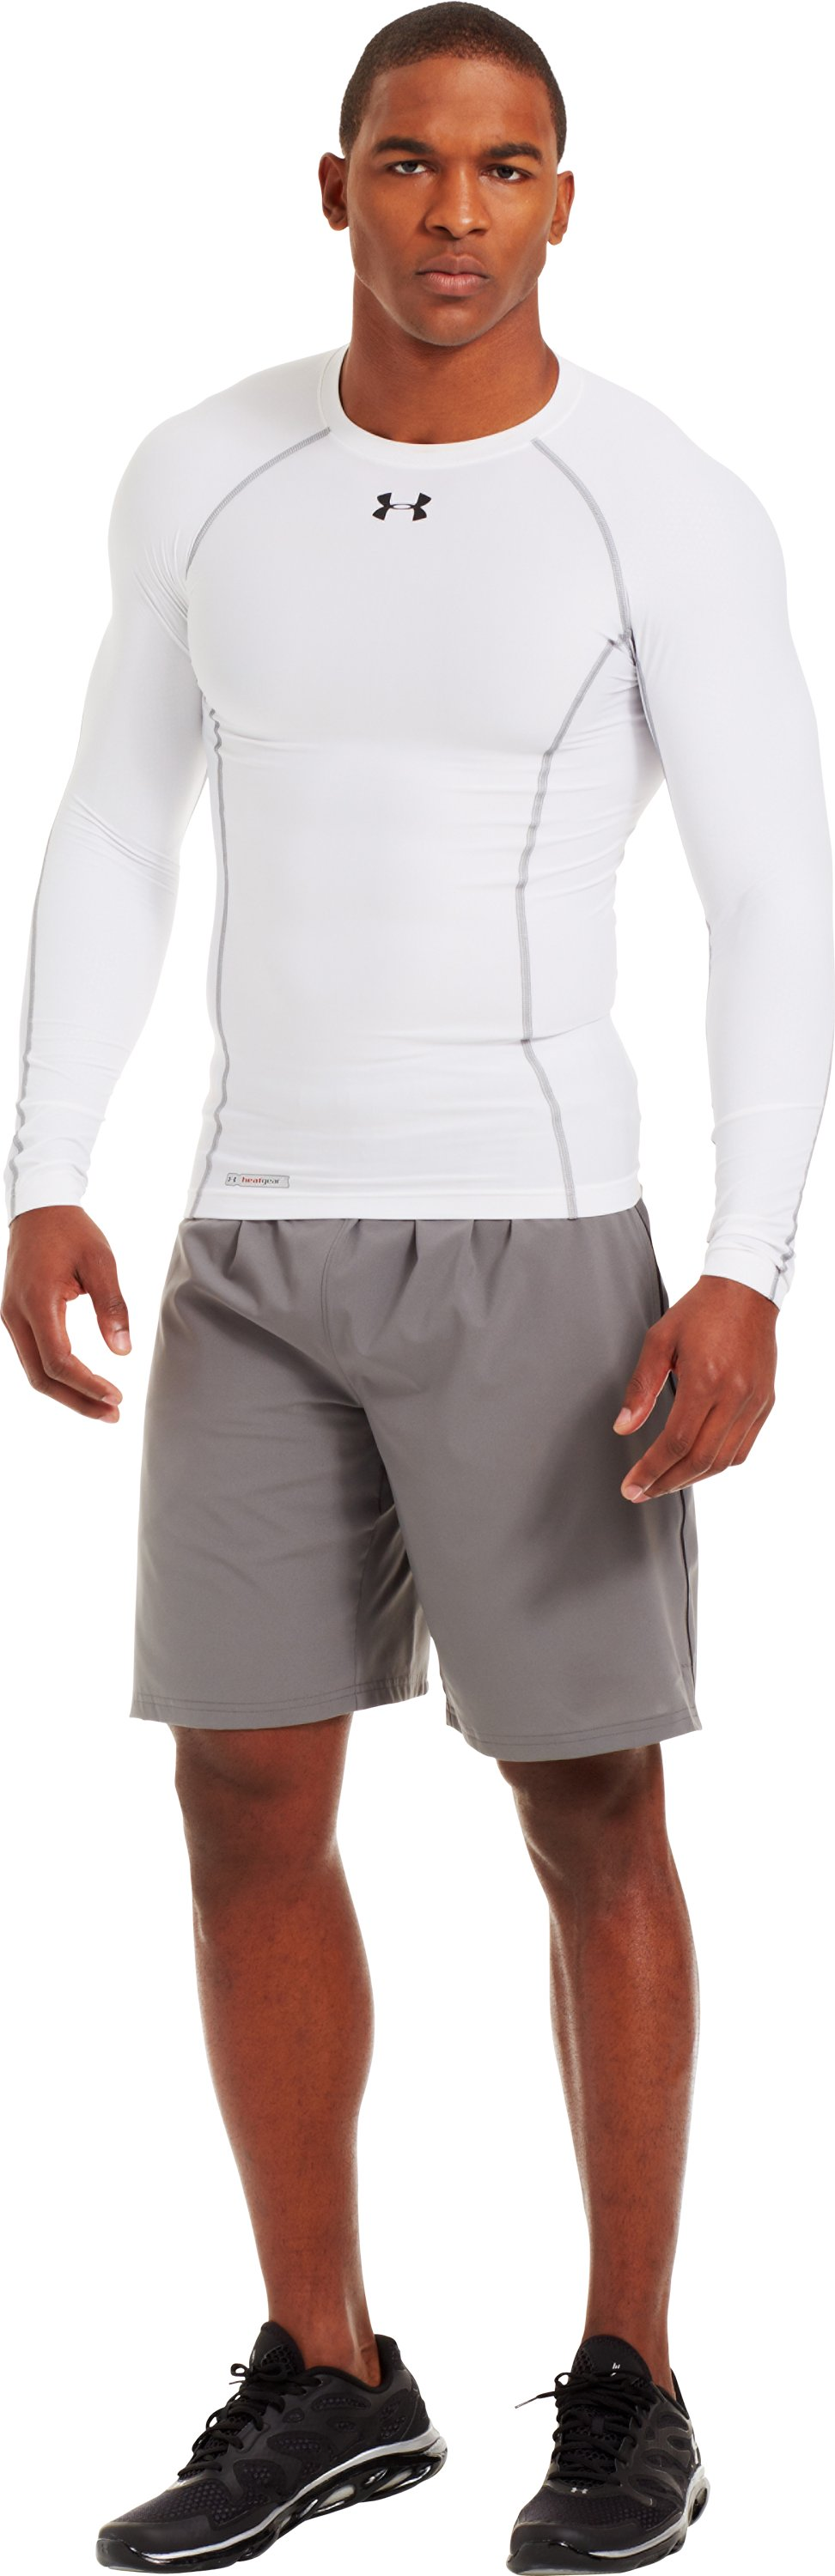 Men's HeatGear® Renegade Compression Long Sleeve, White, zoomed image